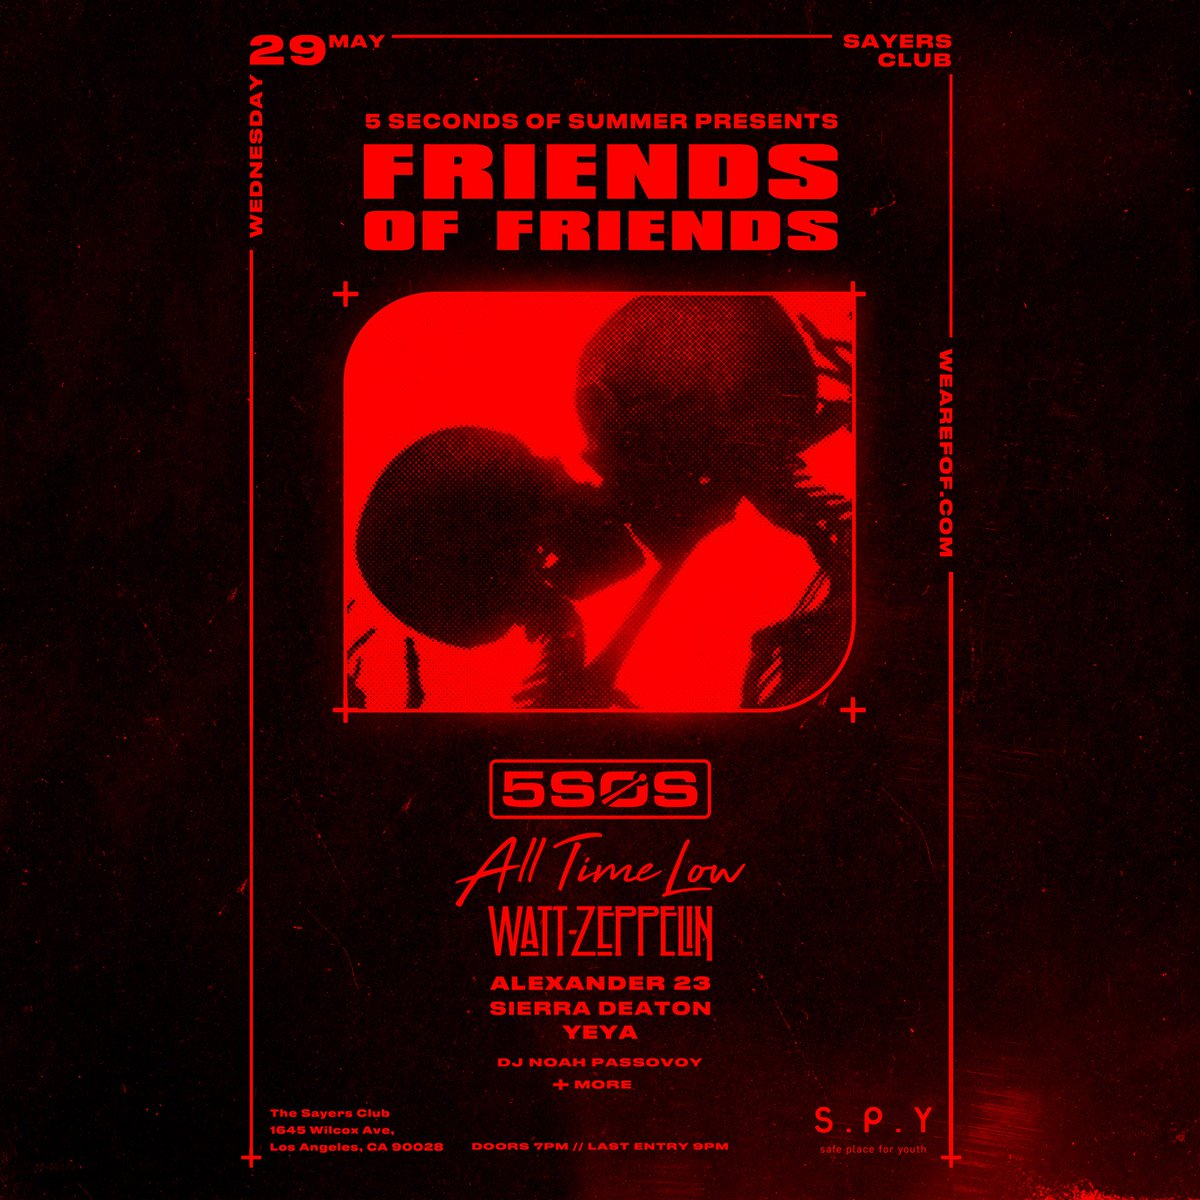 Today we are proud to announce our first ever FRIENDS OF FRIENDS show at The Sayers Club on 05/29. ALL PROFITS generated from this 1st show will be donated to @SafePlaceforYouth in Venice, California. Tickets are very limited. http://smarturl.it/FoFSayersClub